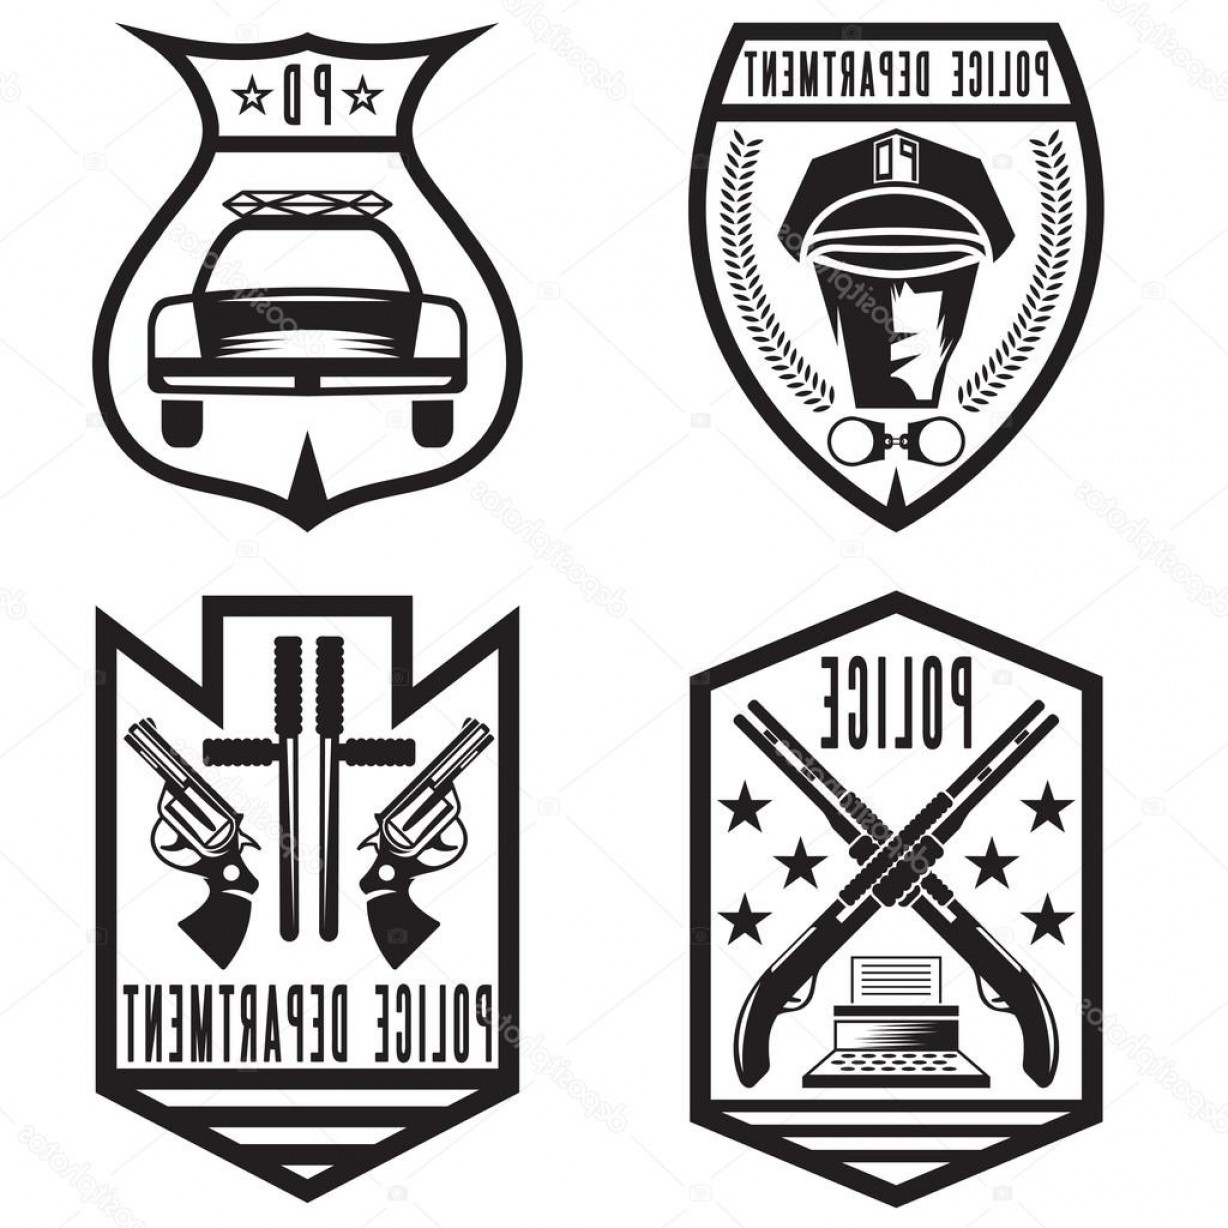 Law Enforcement Badges Vector: Stock Illustration Set Of Vintage Police Law